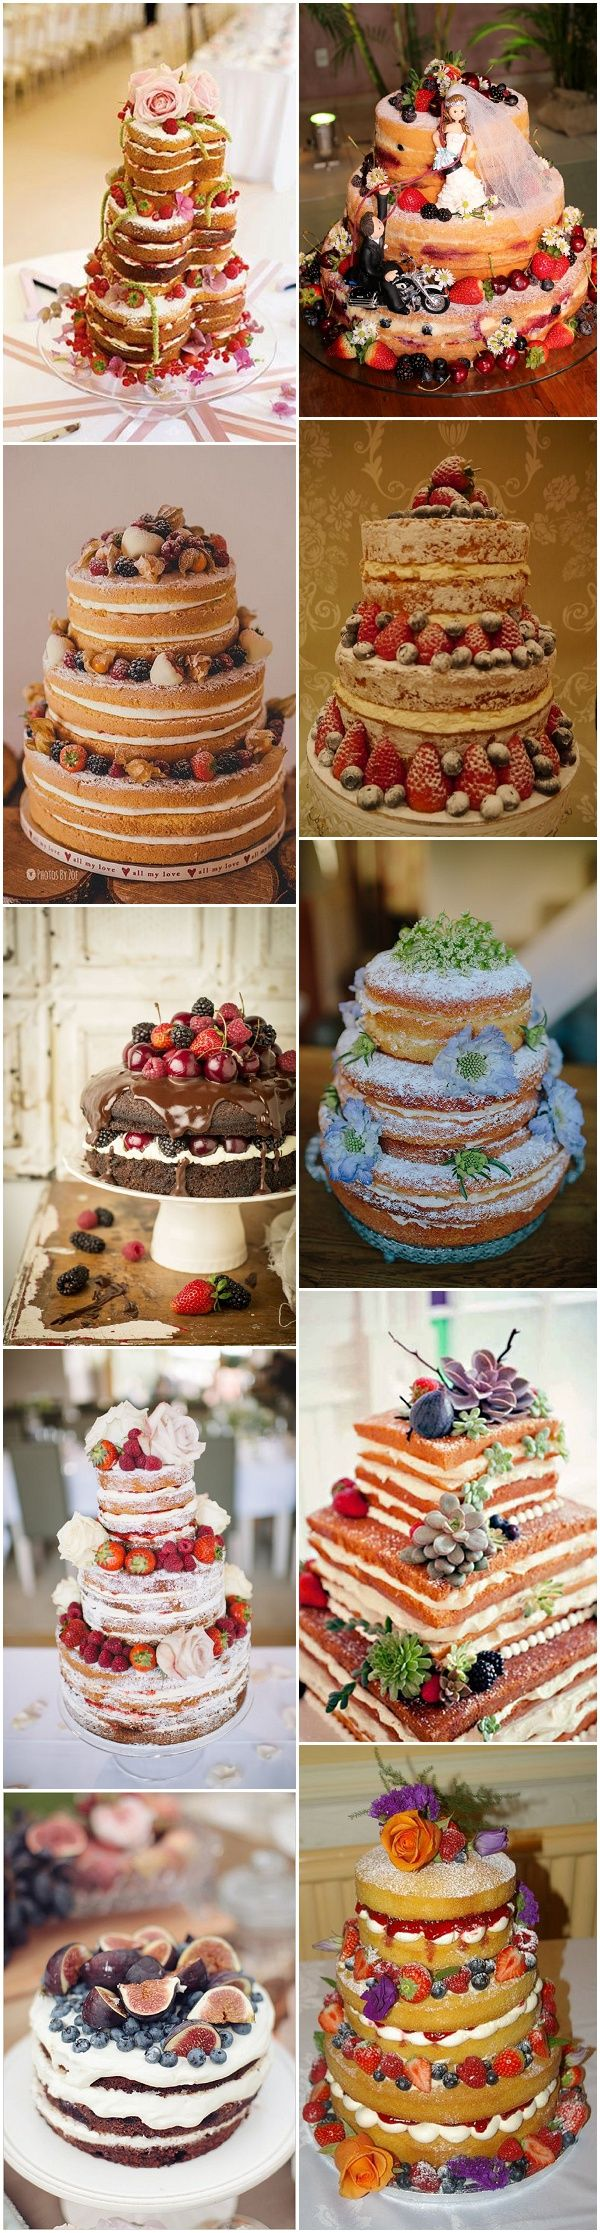 naked wedding cake -: